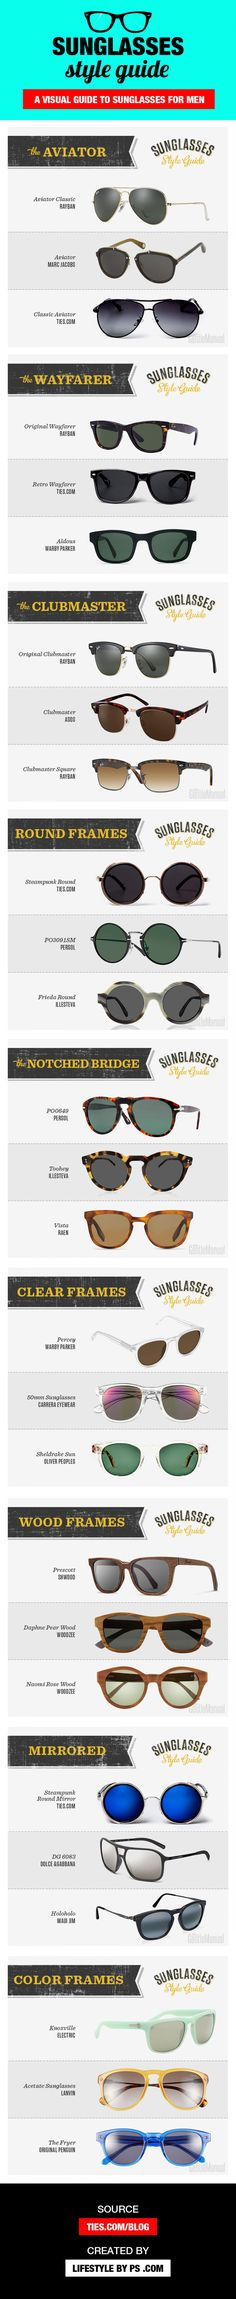 Guide To Sunglasses For Man - Infographic Infographic